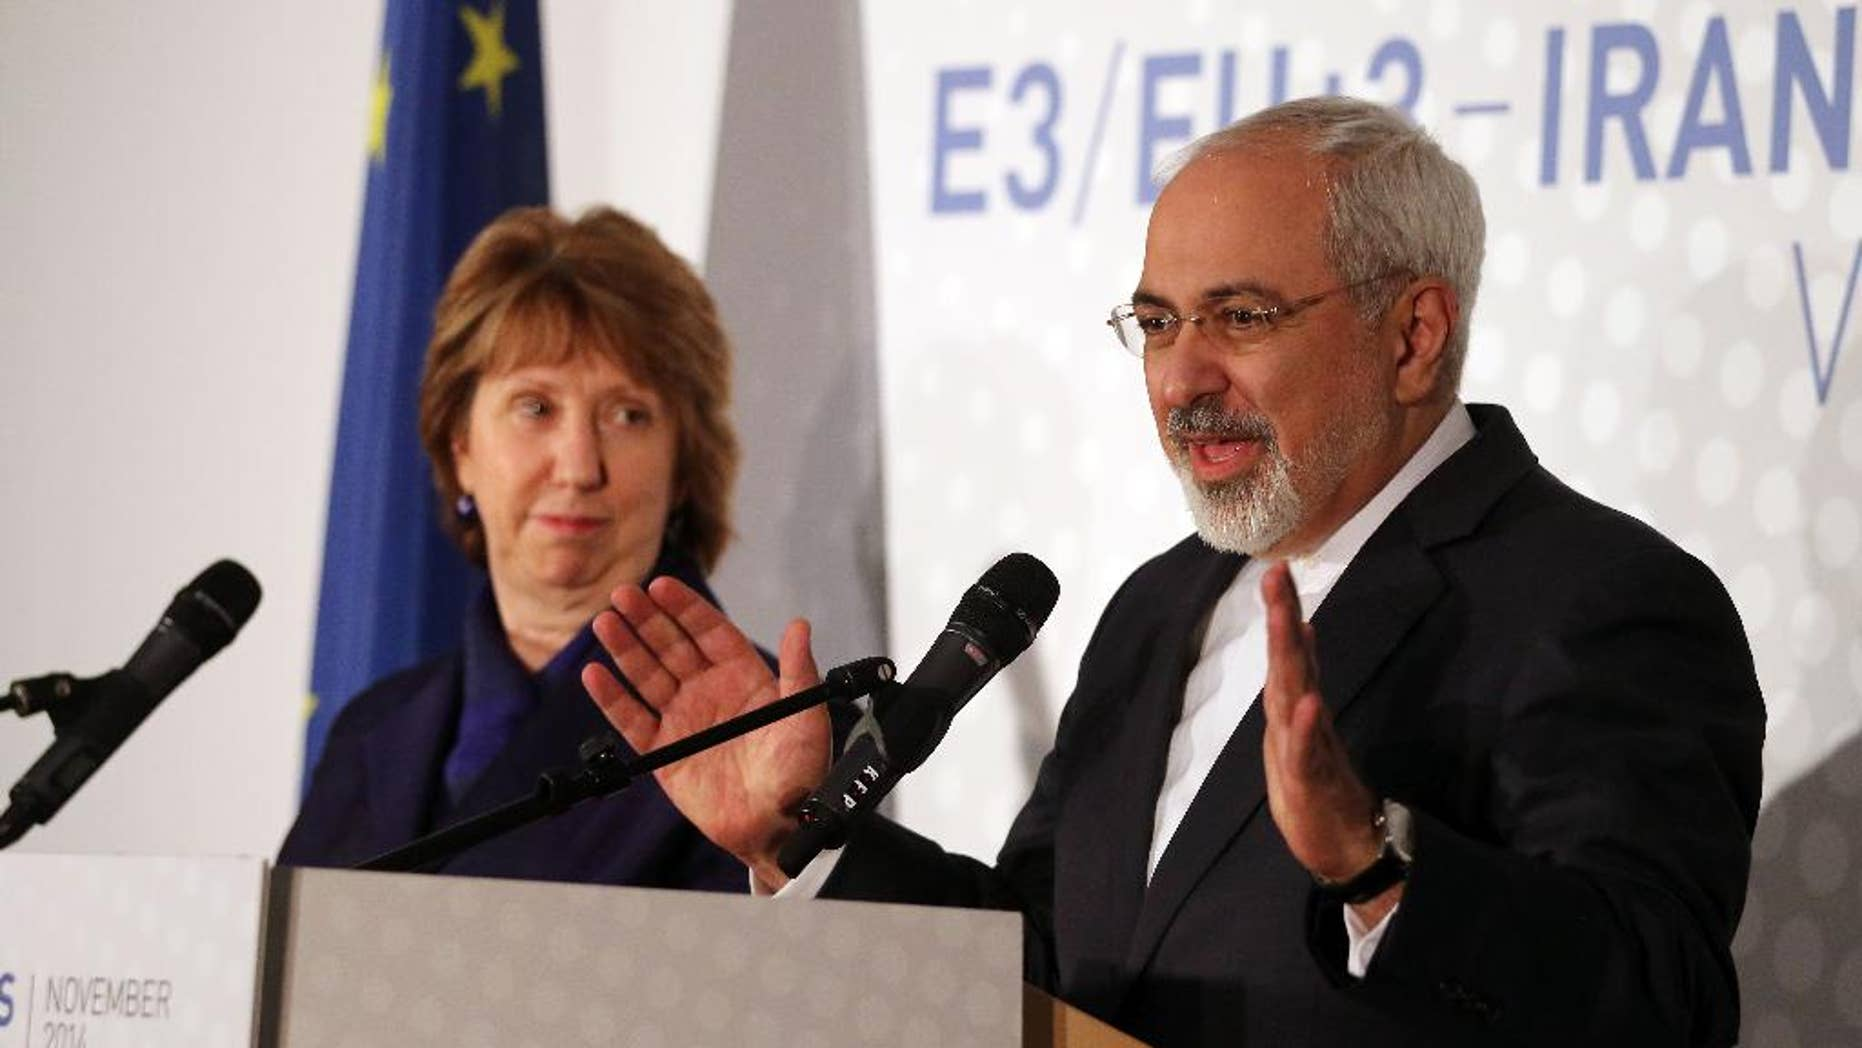 Former European foreign policy chief Catherine Ashton, left, and Iranian Foreign Minister Mohamad Javad Zarif, right, address the media after closed-door nuclear talks in Vienna, Austria, Monday, Nov. 24, 2014.  Facing still significant differences between the U.S. and Iran, negotiators gave up on last-minute efforts to get a nuclear deal by the Monday deadline and extended their talks for another seven months. (AP Photo/Ronald Zak)